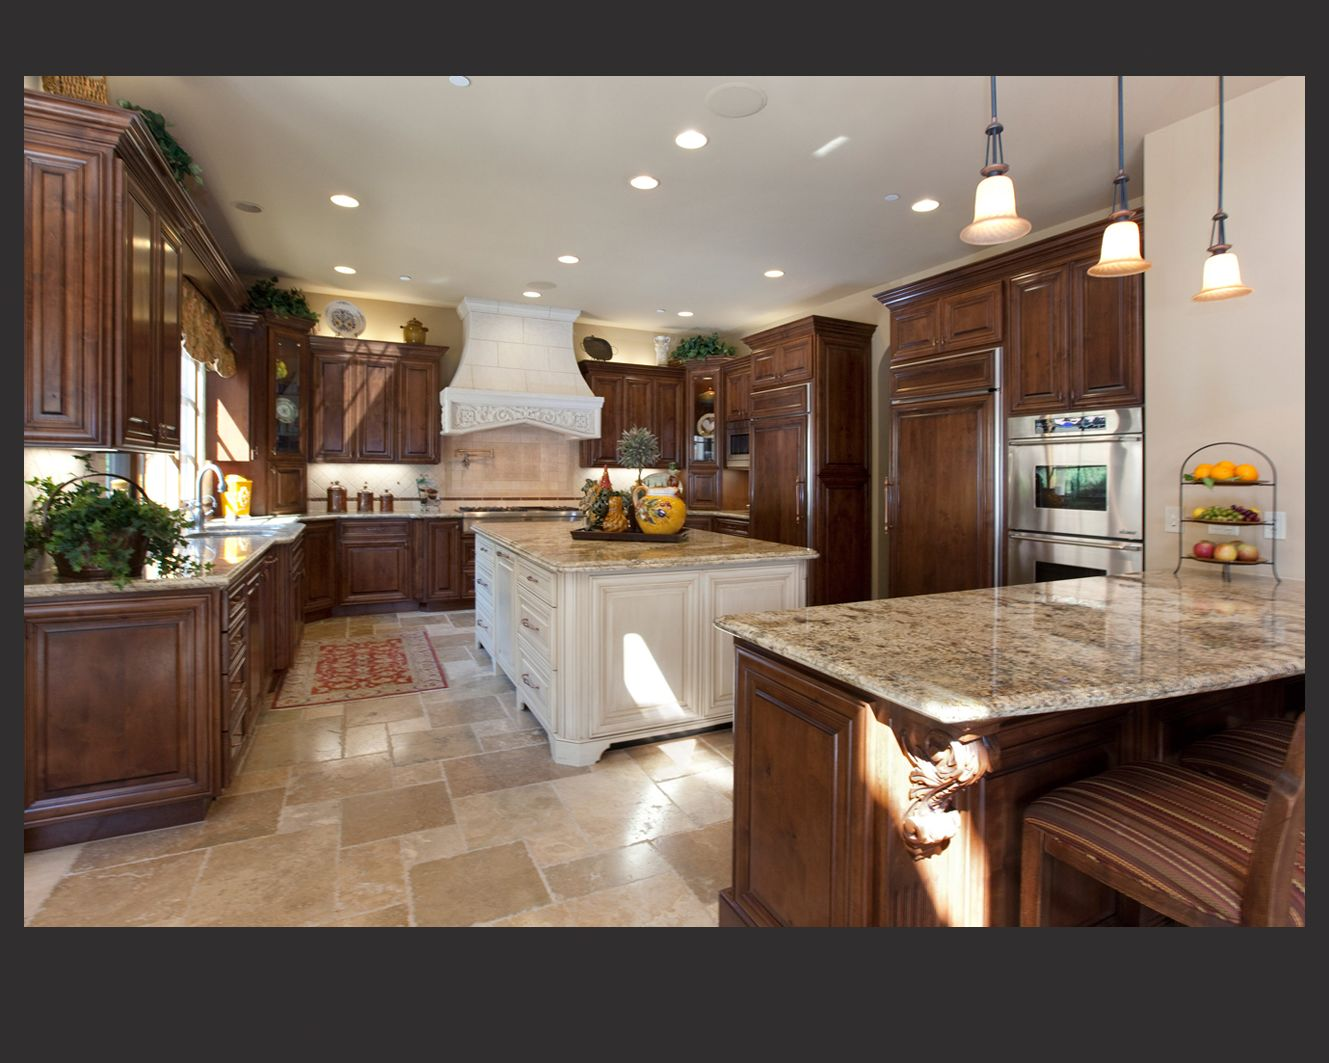 Pictures Of Dark Kitchen Cabinets With Light Countertops Magnificent Kitchen Designs With Dark Cabinets